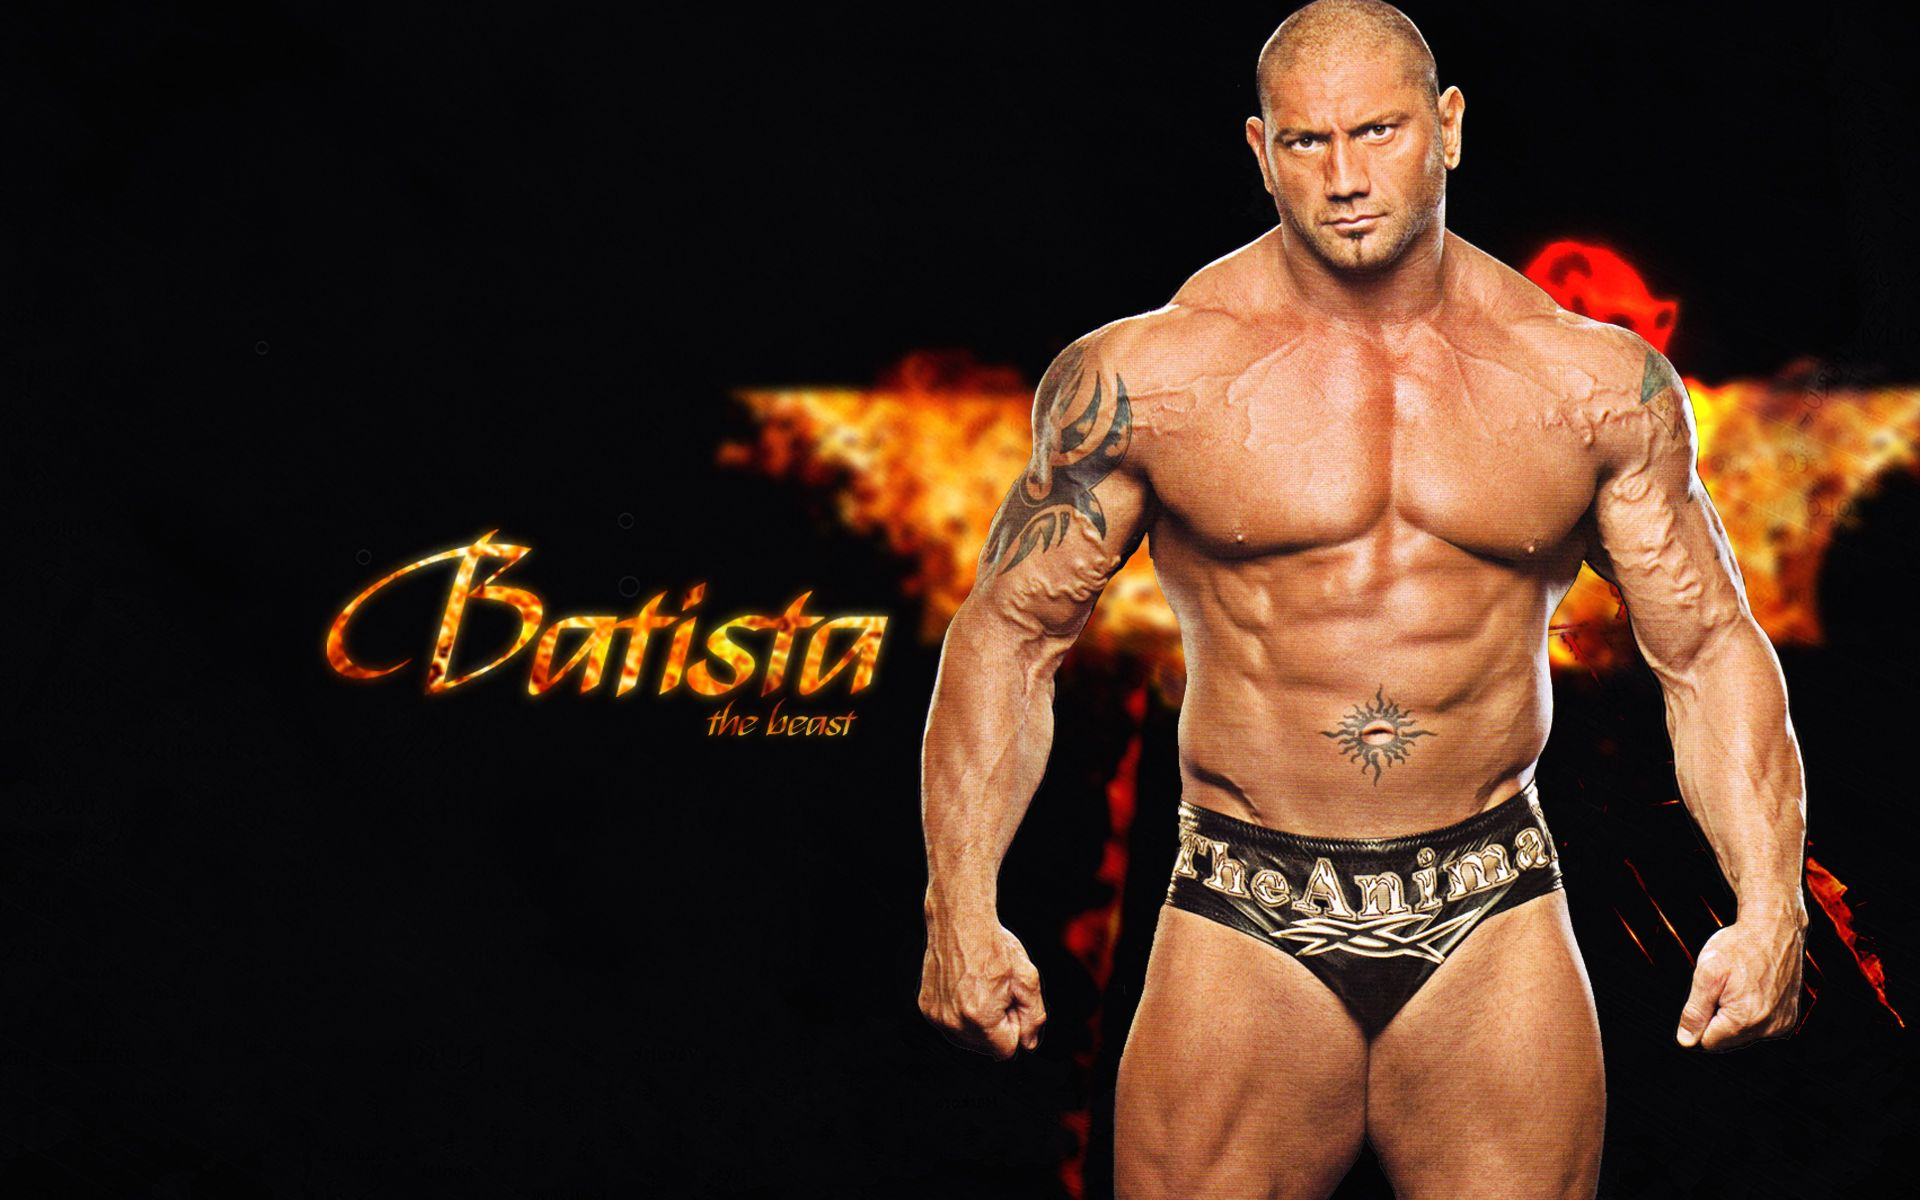 Dave Batista Then And Now